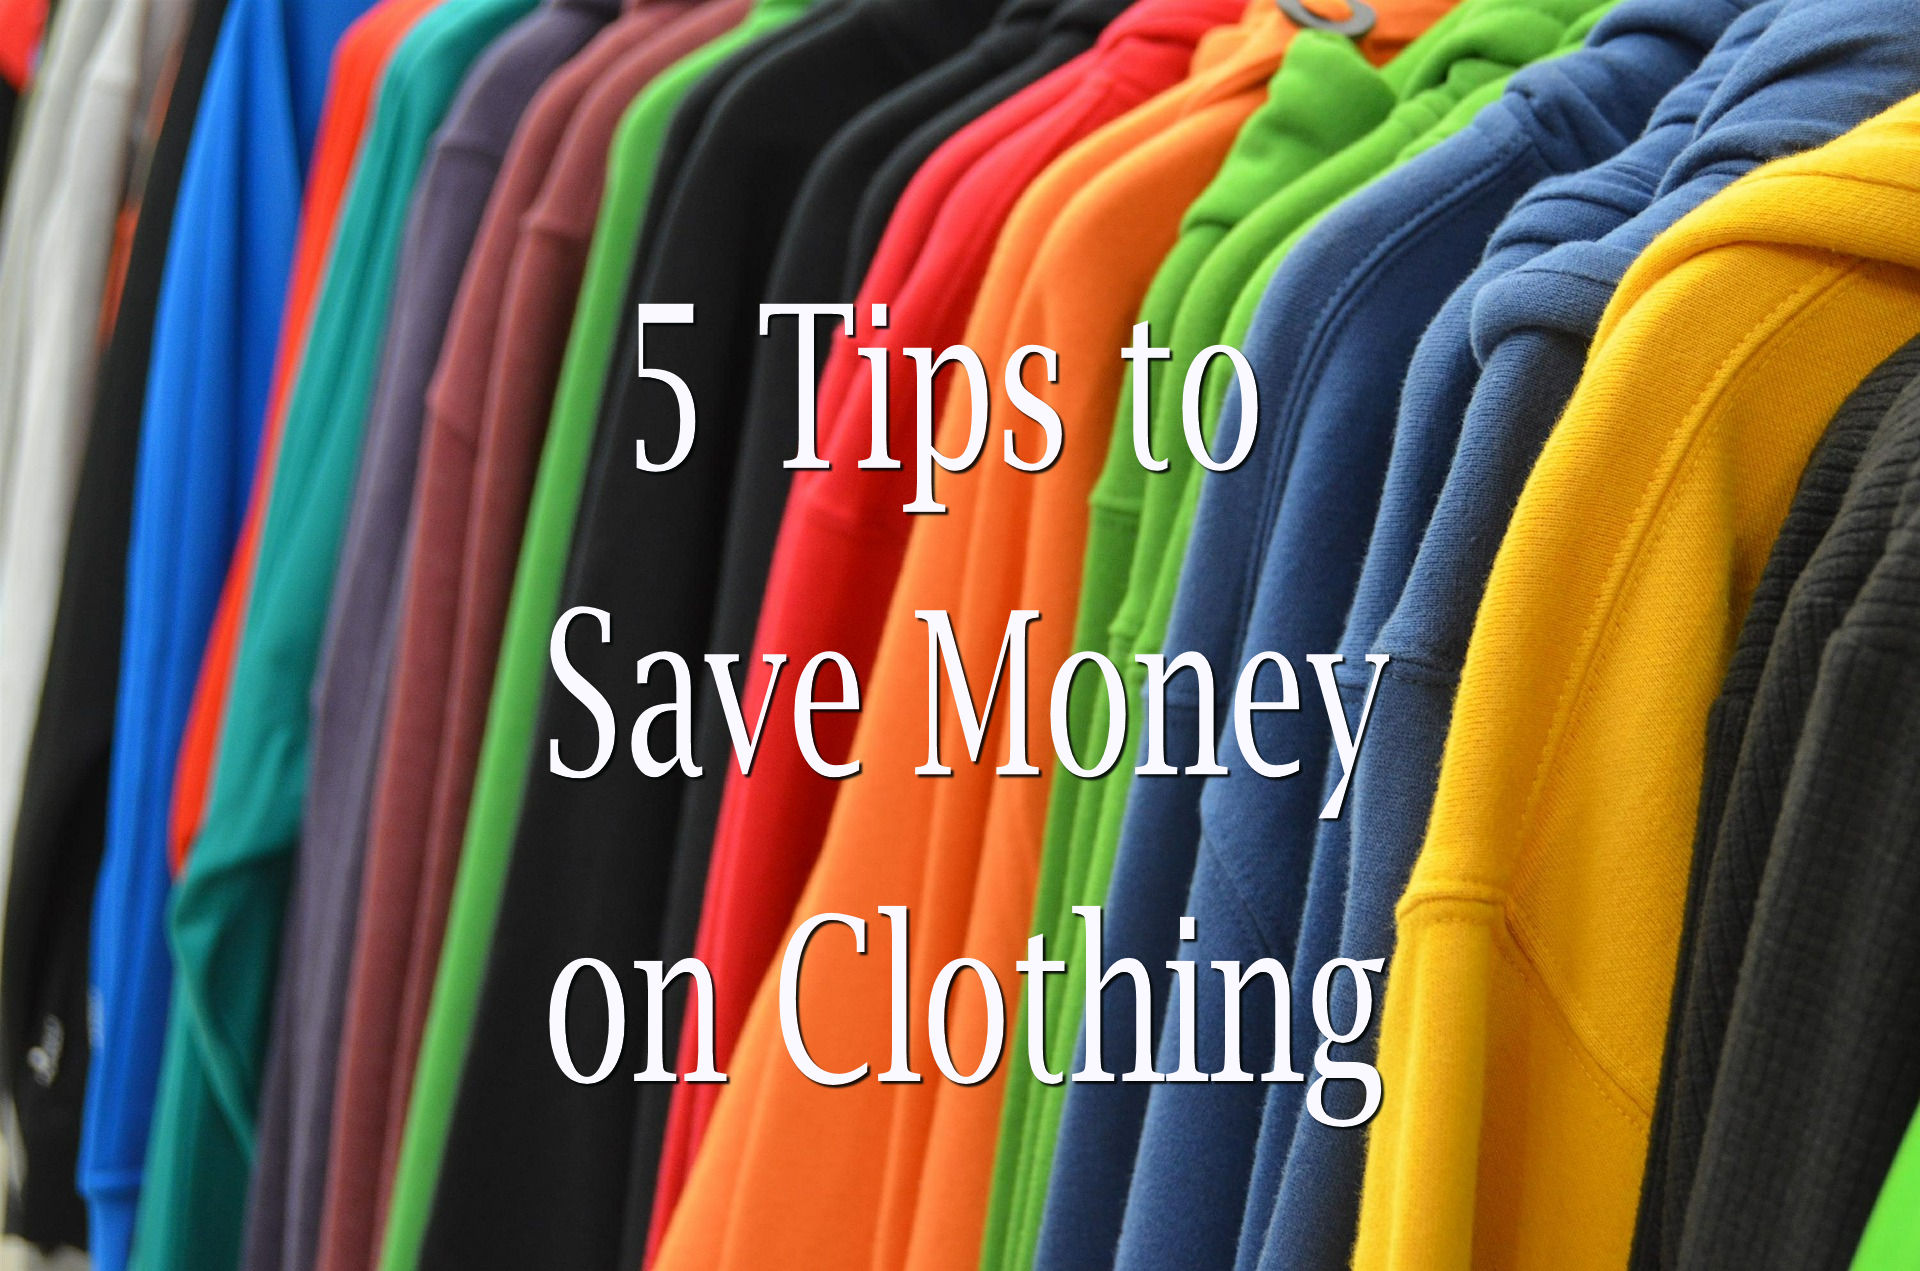 5 tips to save money on clothing